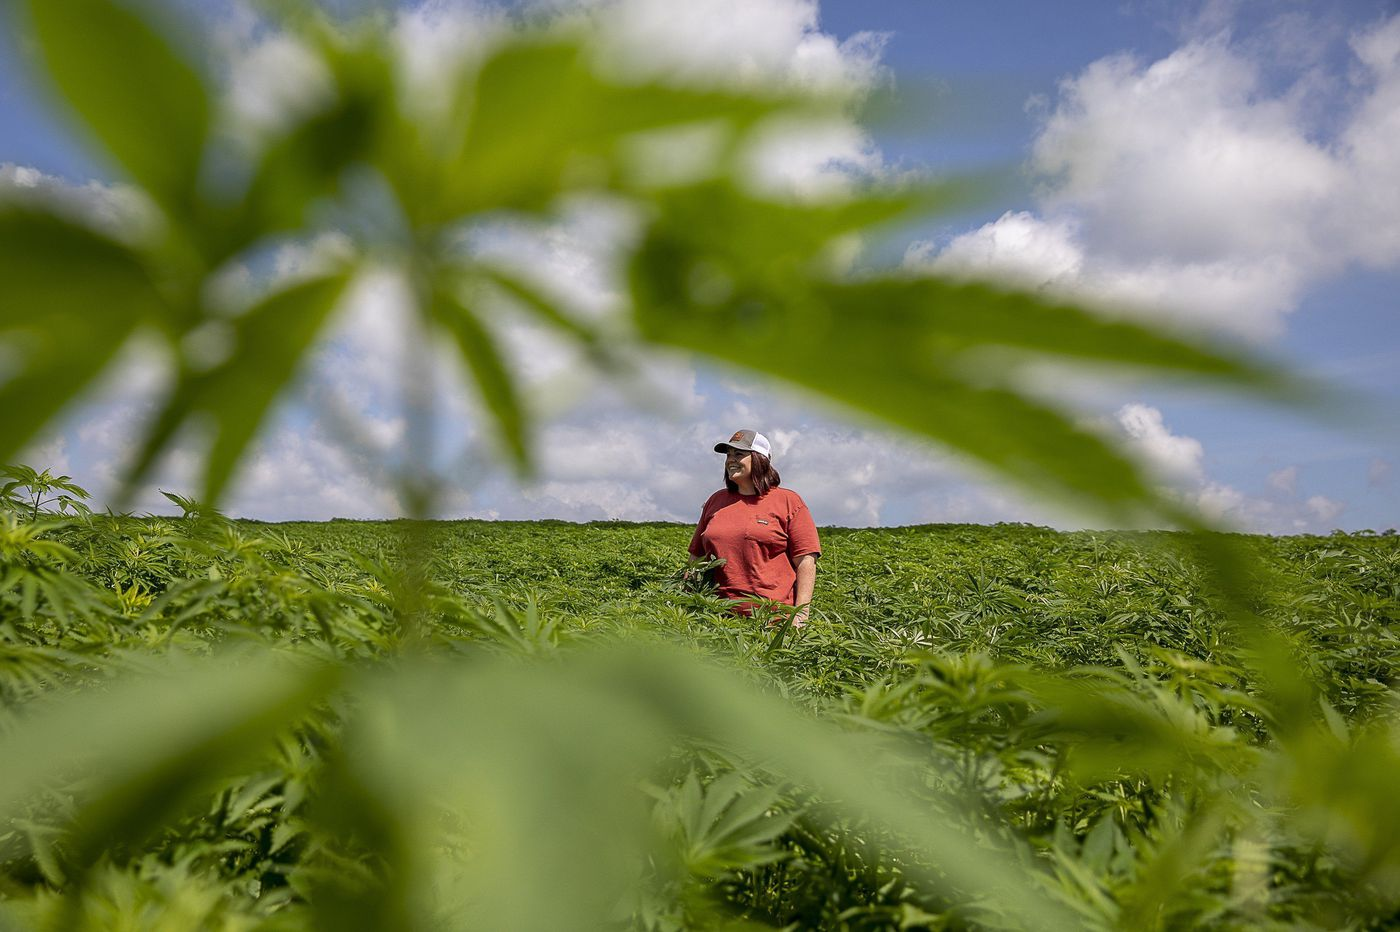 Flood of hemp harvest hitting the market could sink price